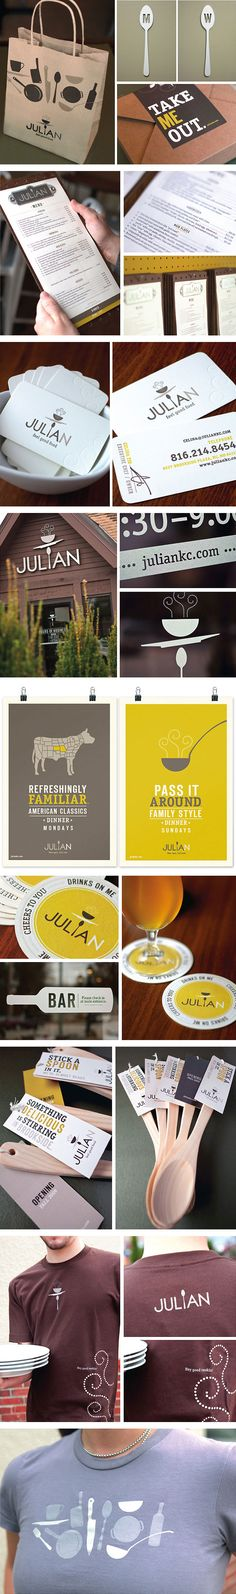 Julian #Restaurant Branding   good adaptation for collateral s